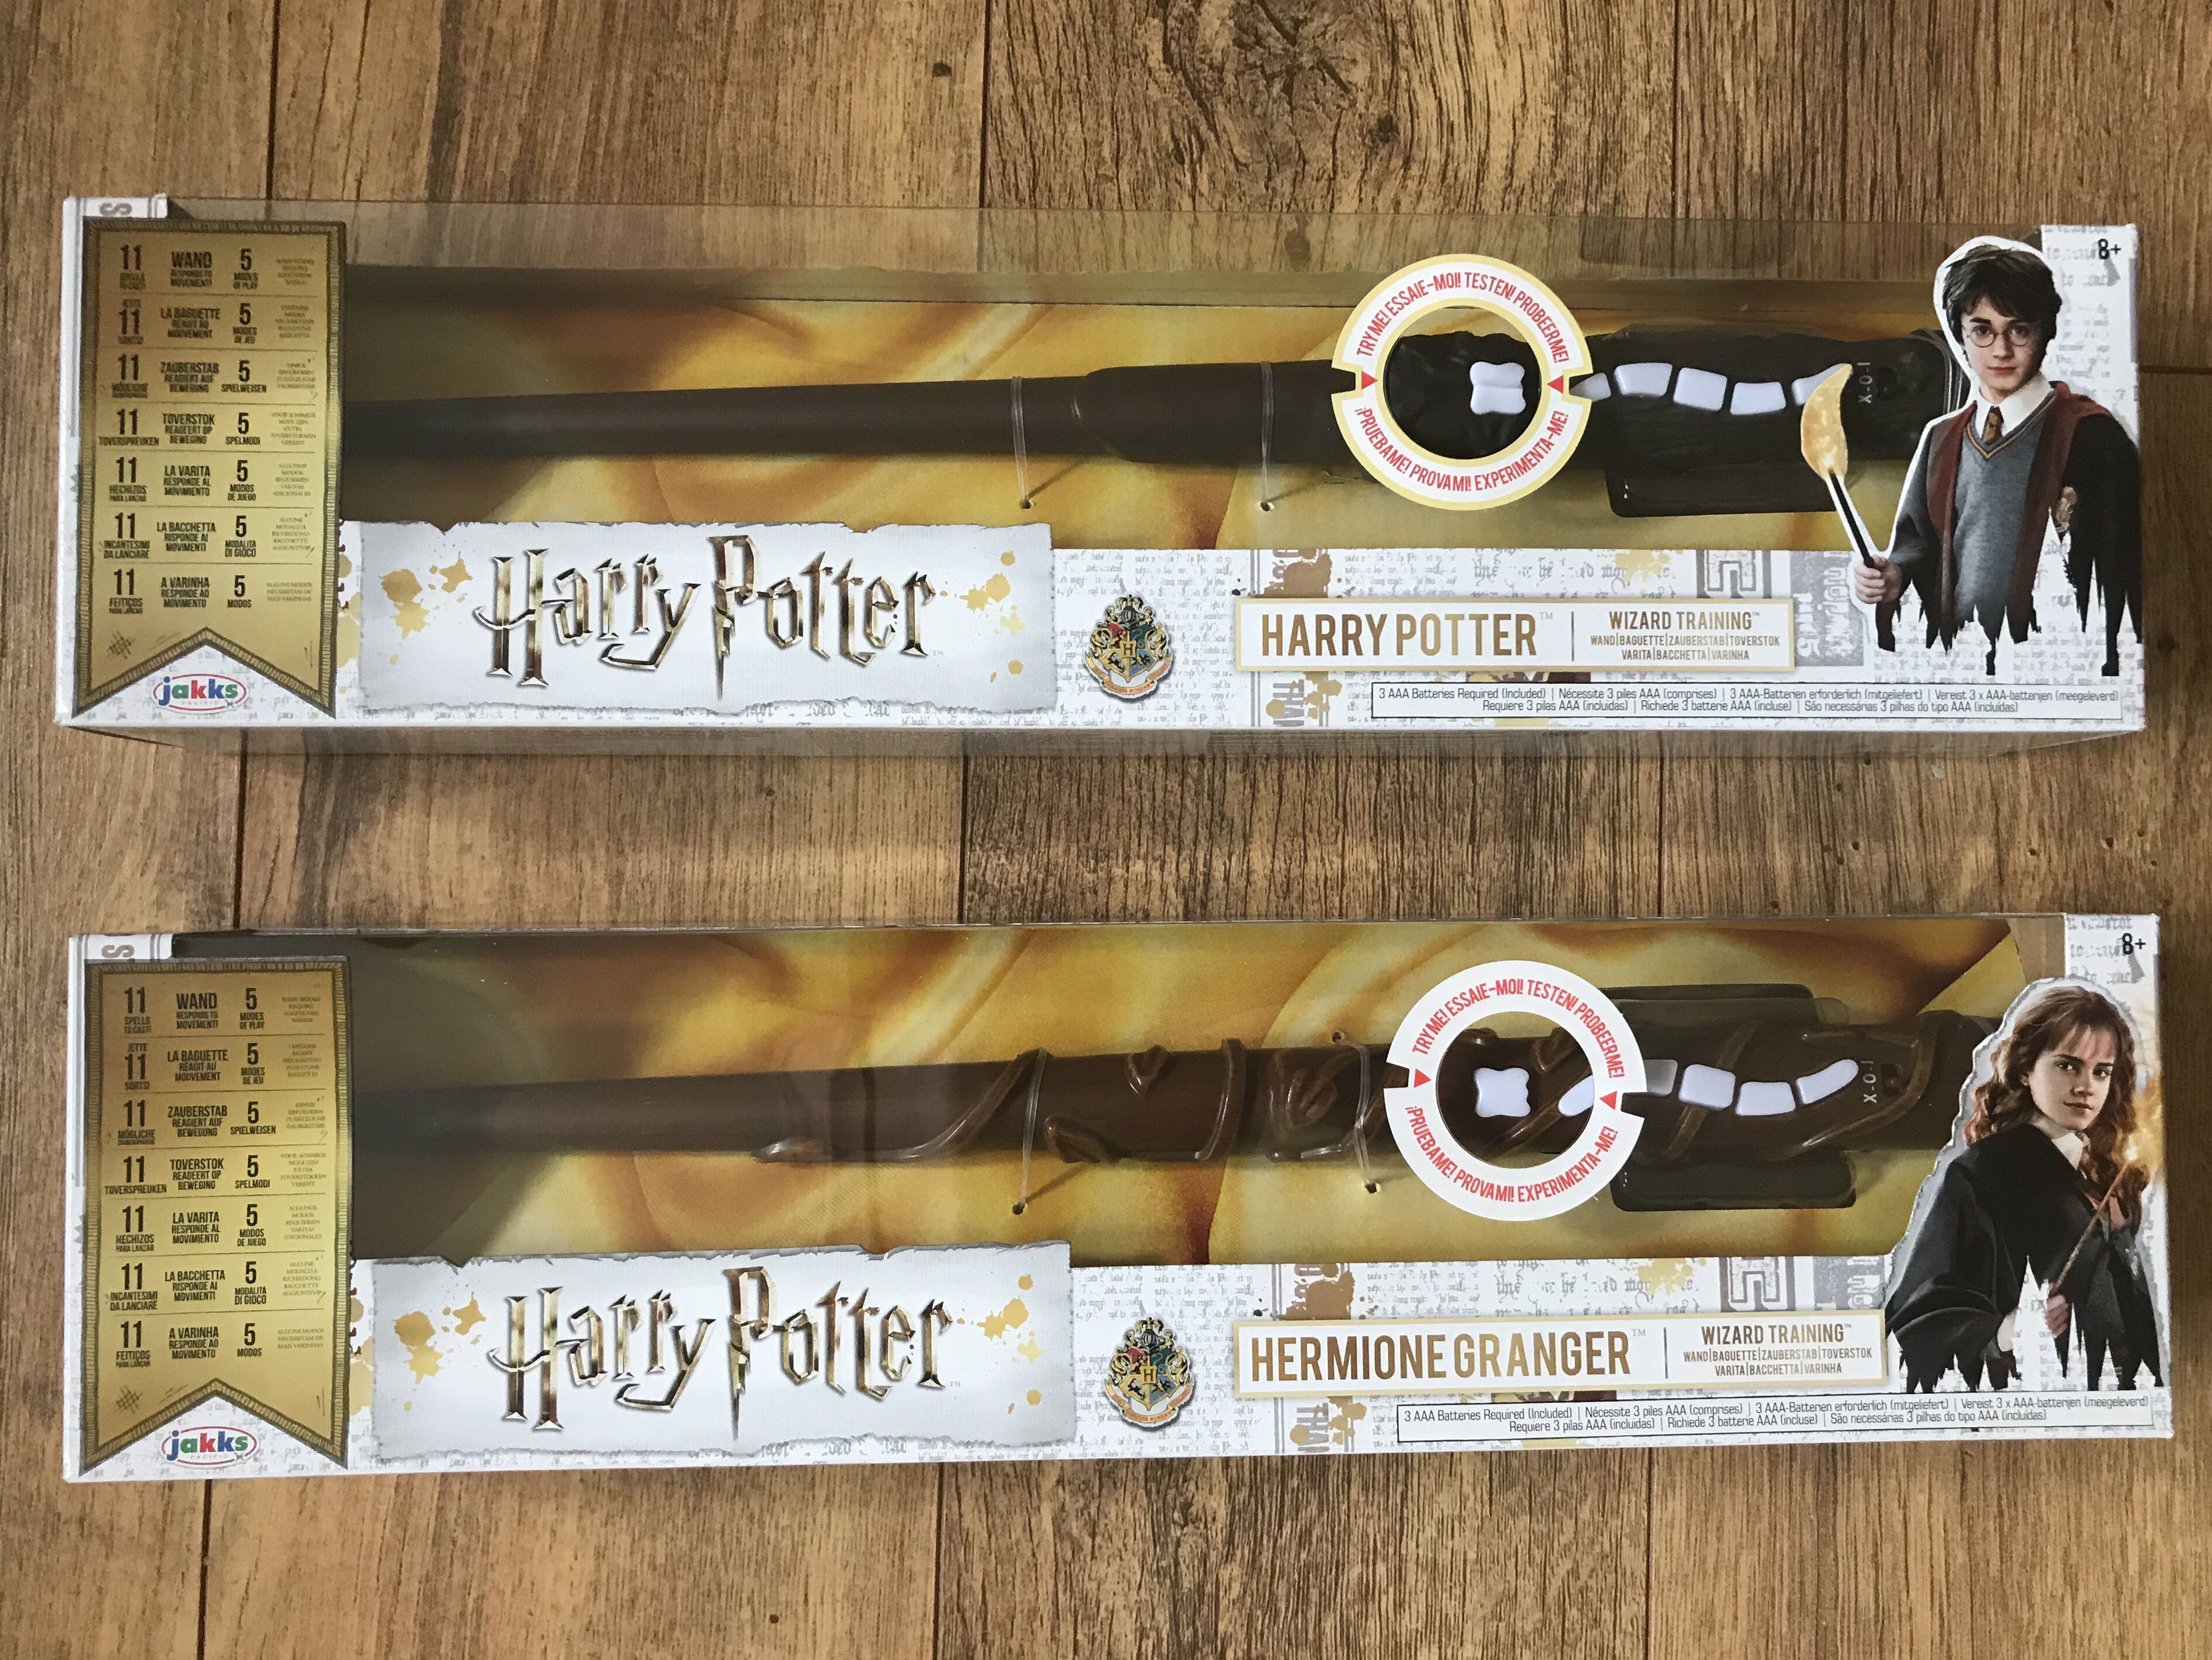 Harry Potter and Hermione Granger Wizard Training Wands from Jakks Toys